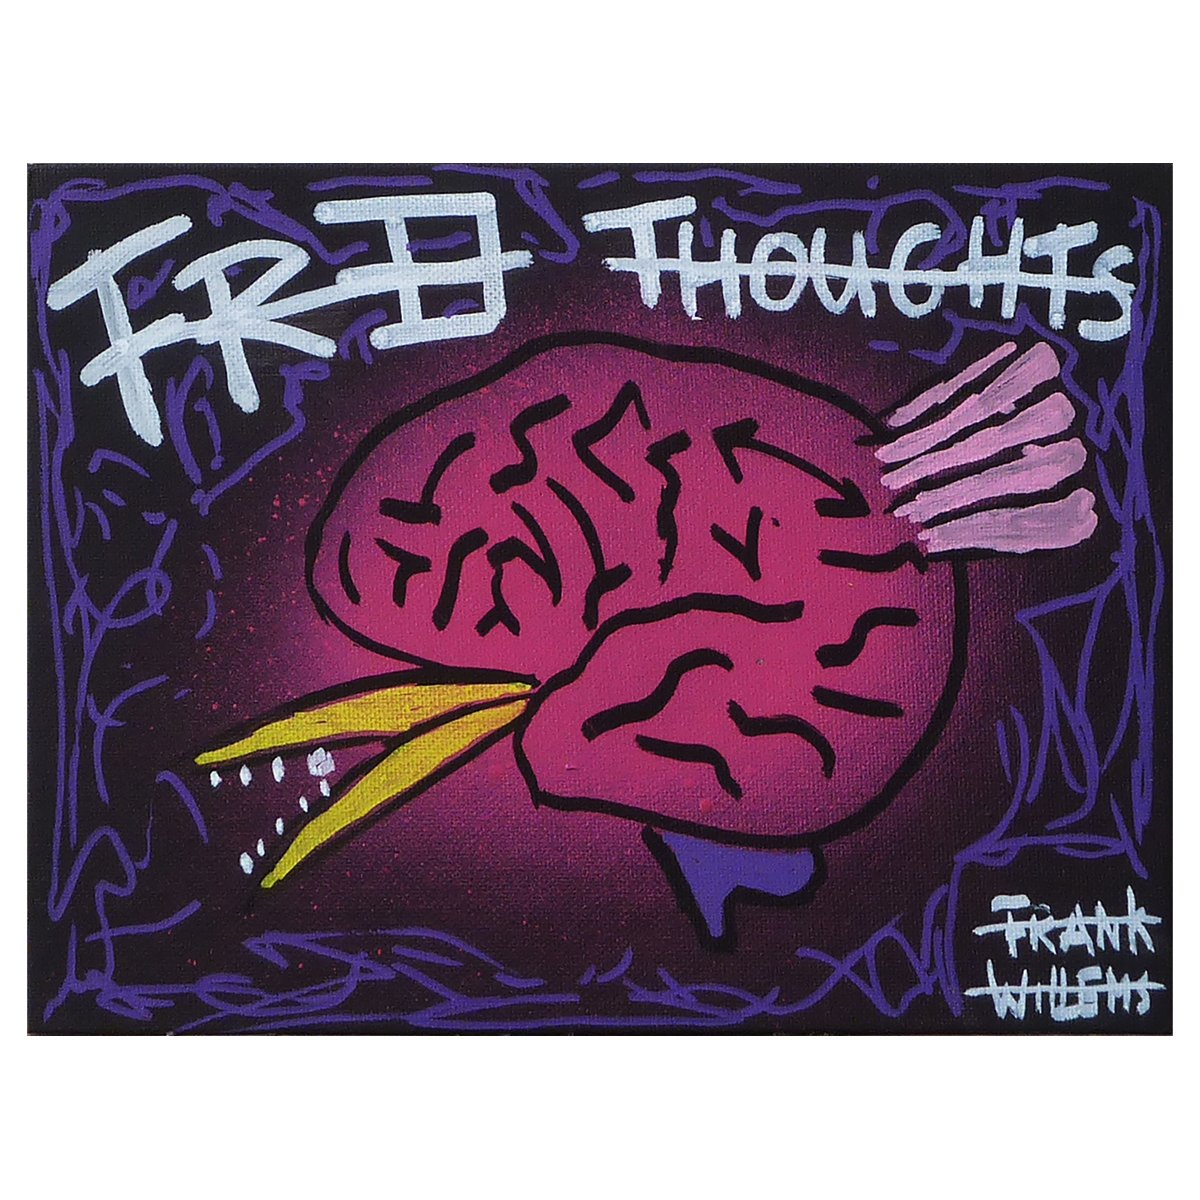 FREE THOUGHTS - Frank Willems